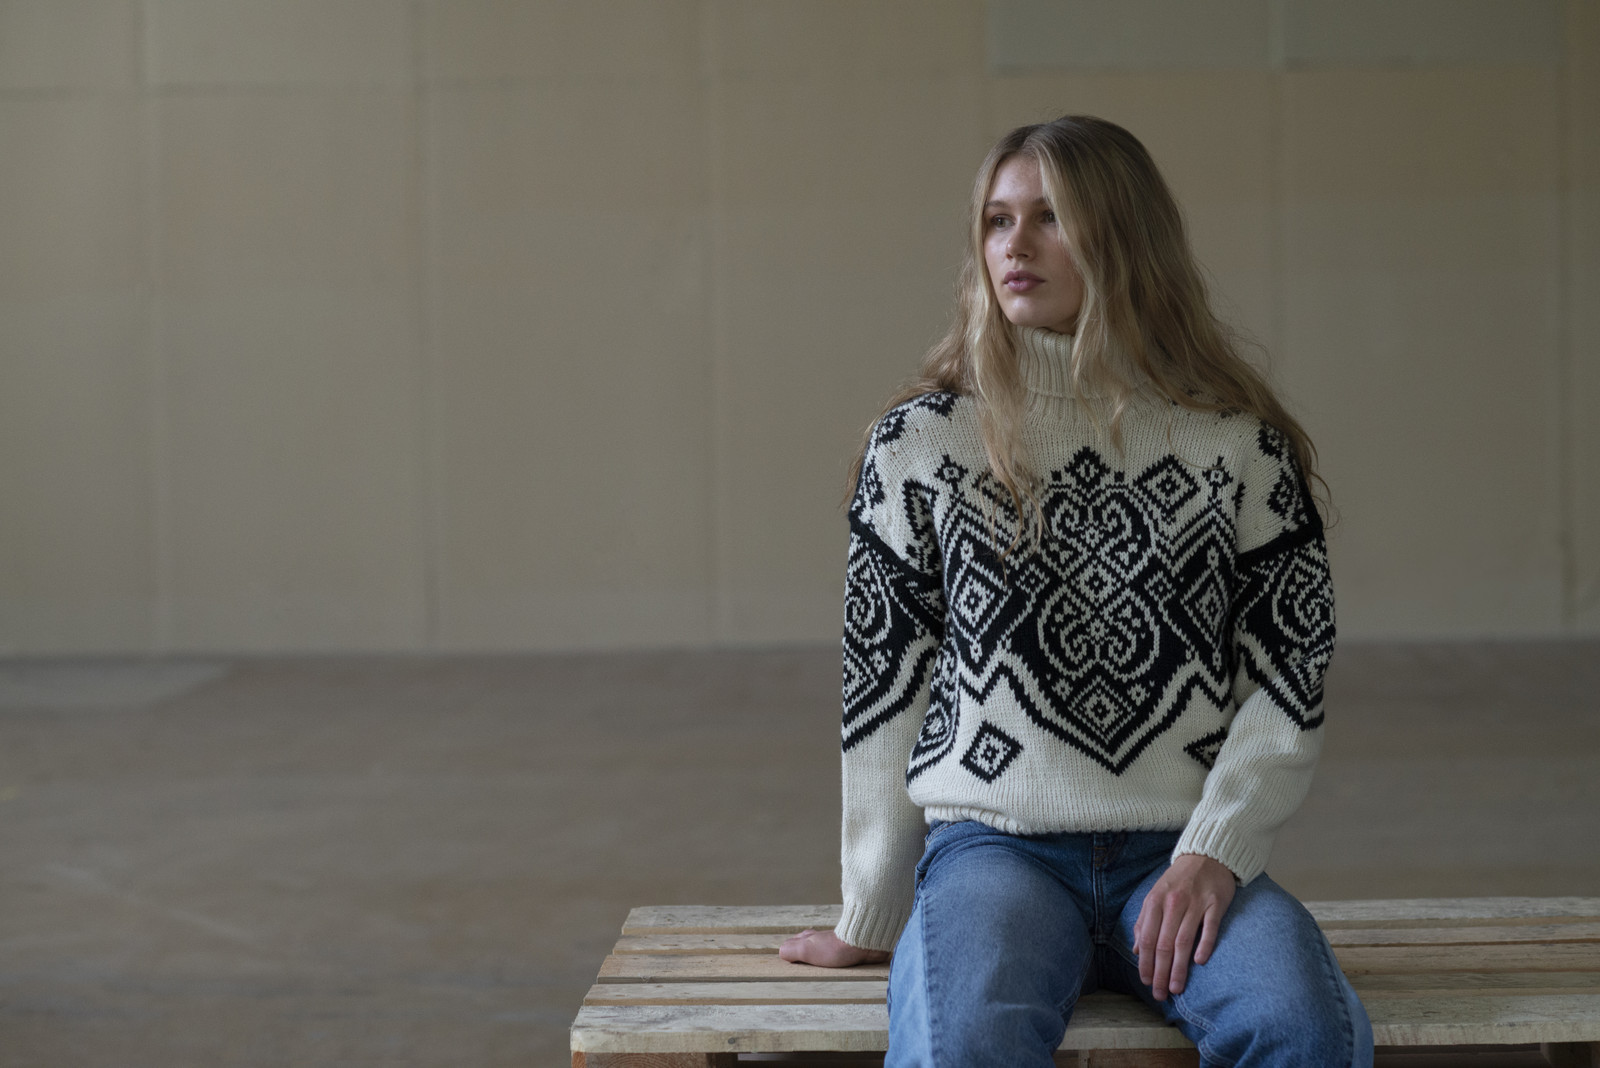 Woman wearing Dale of Norway Falun Sweater, Ladies - Off White/Black, 94041-A